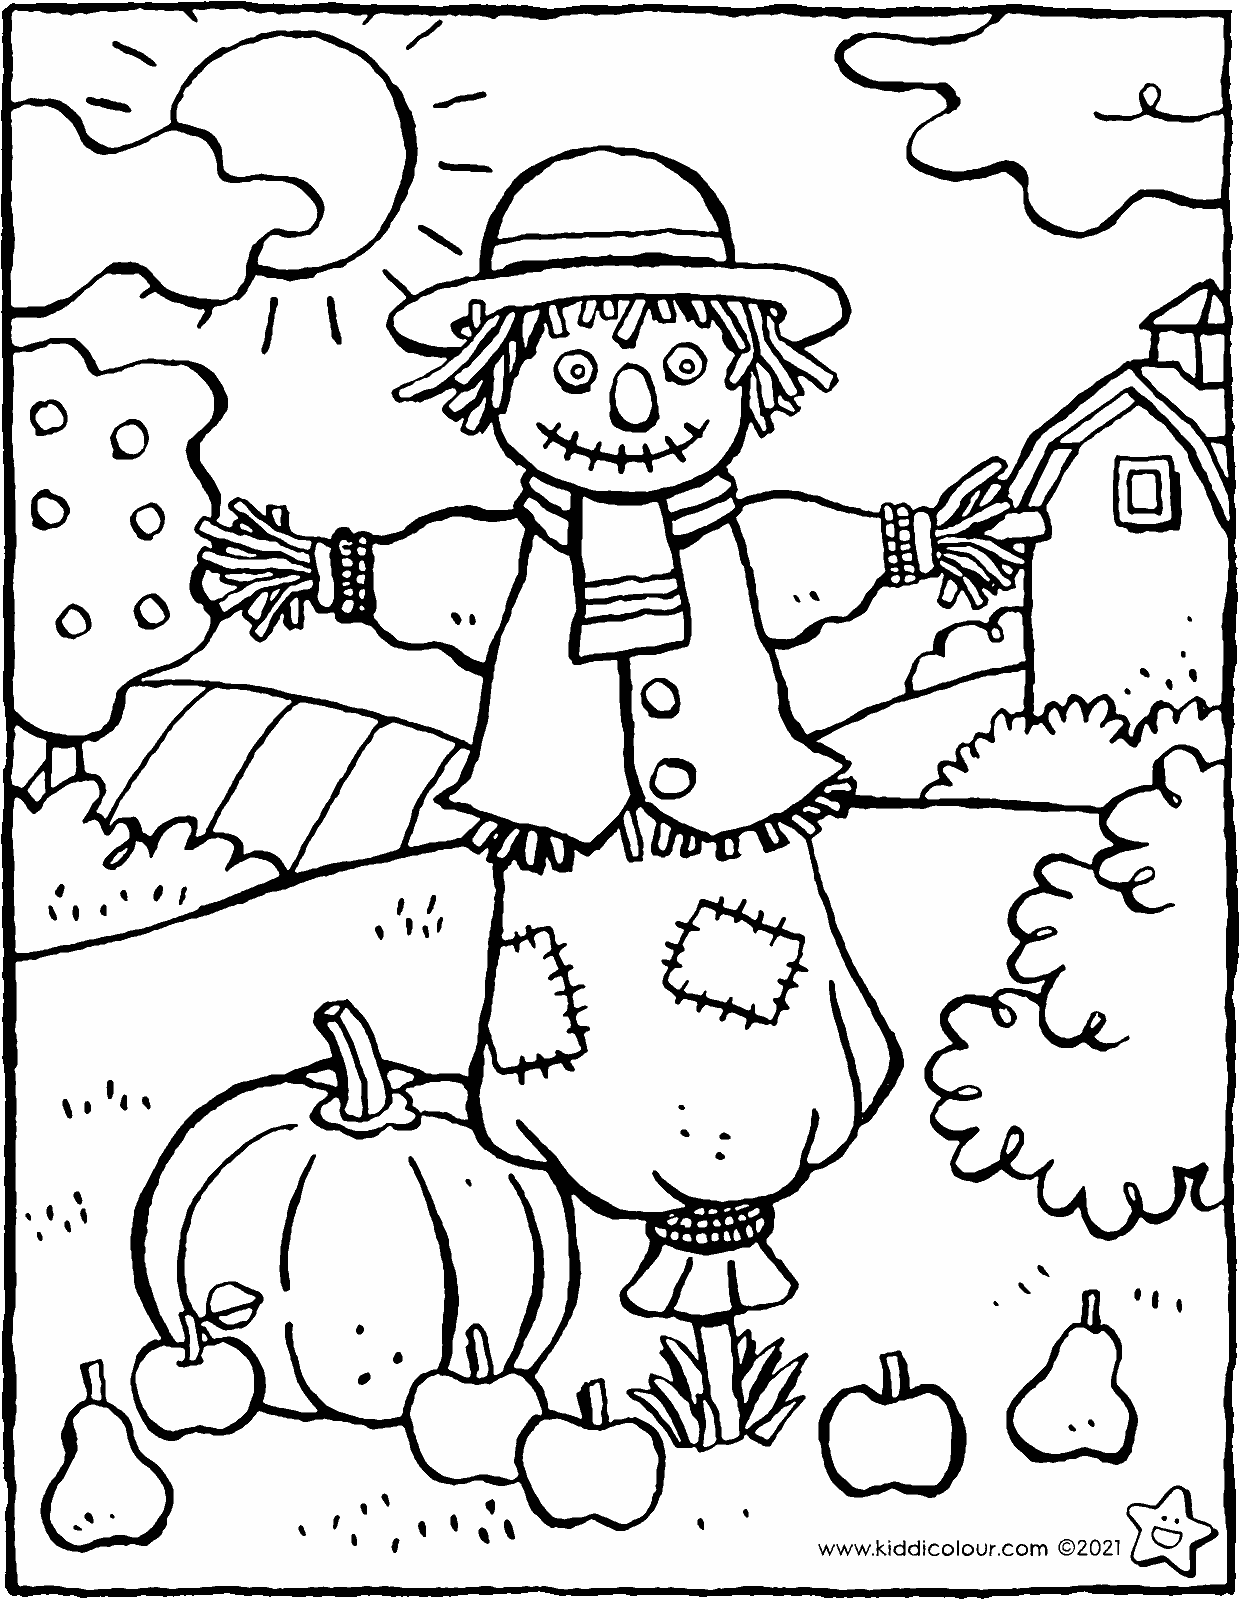 scarecrow in the garden colouring page drawing picture 01V